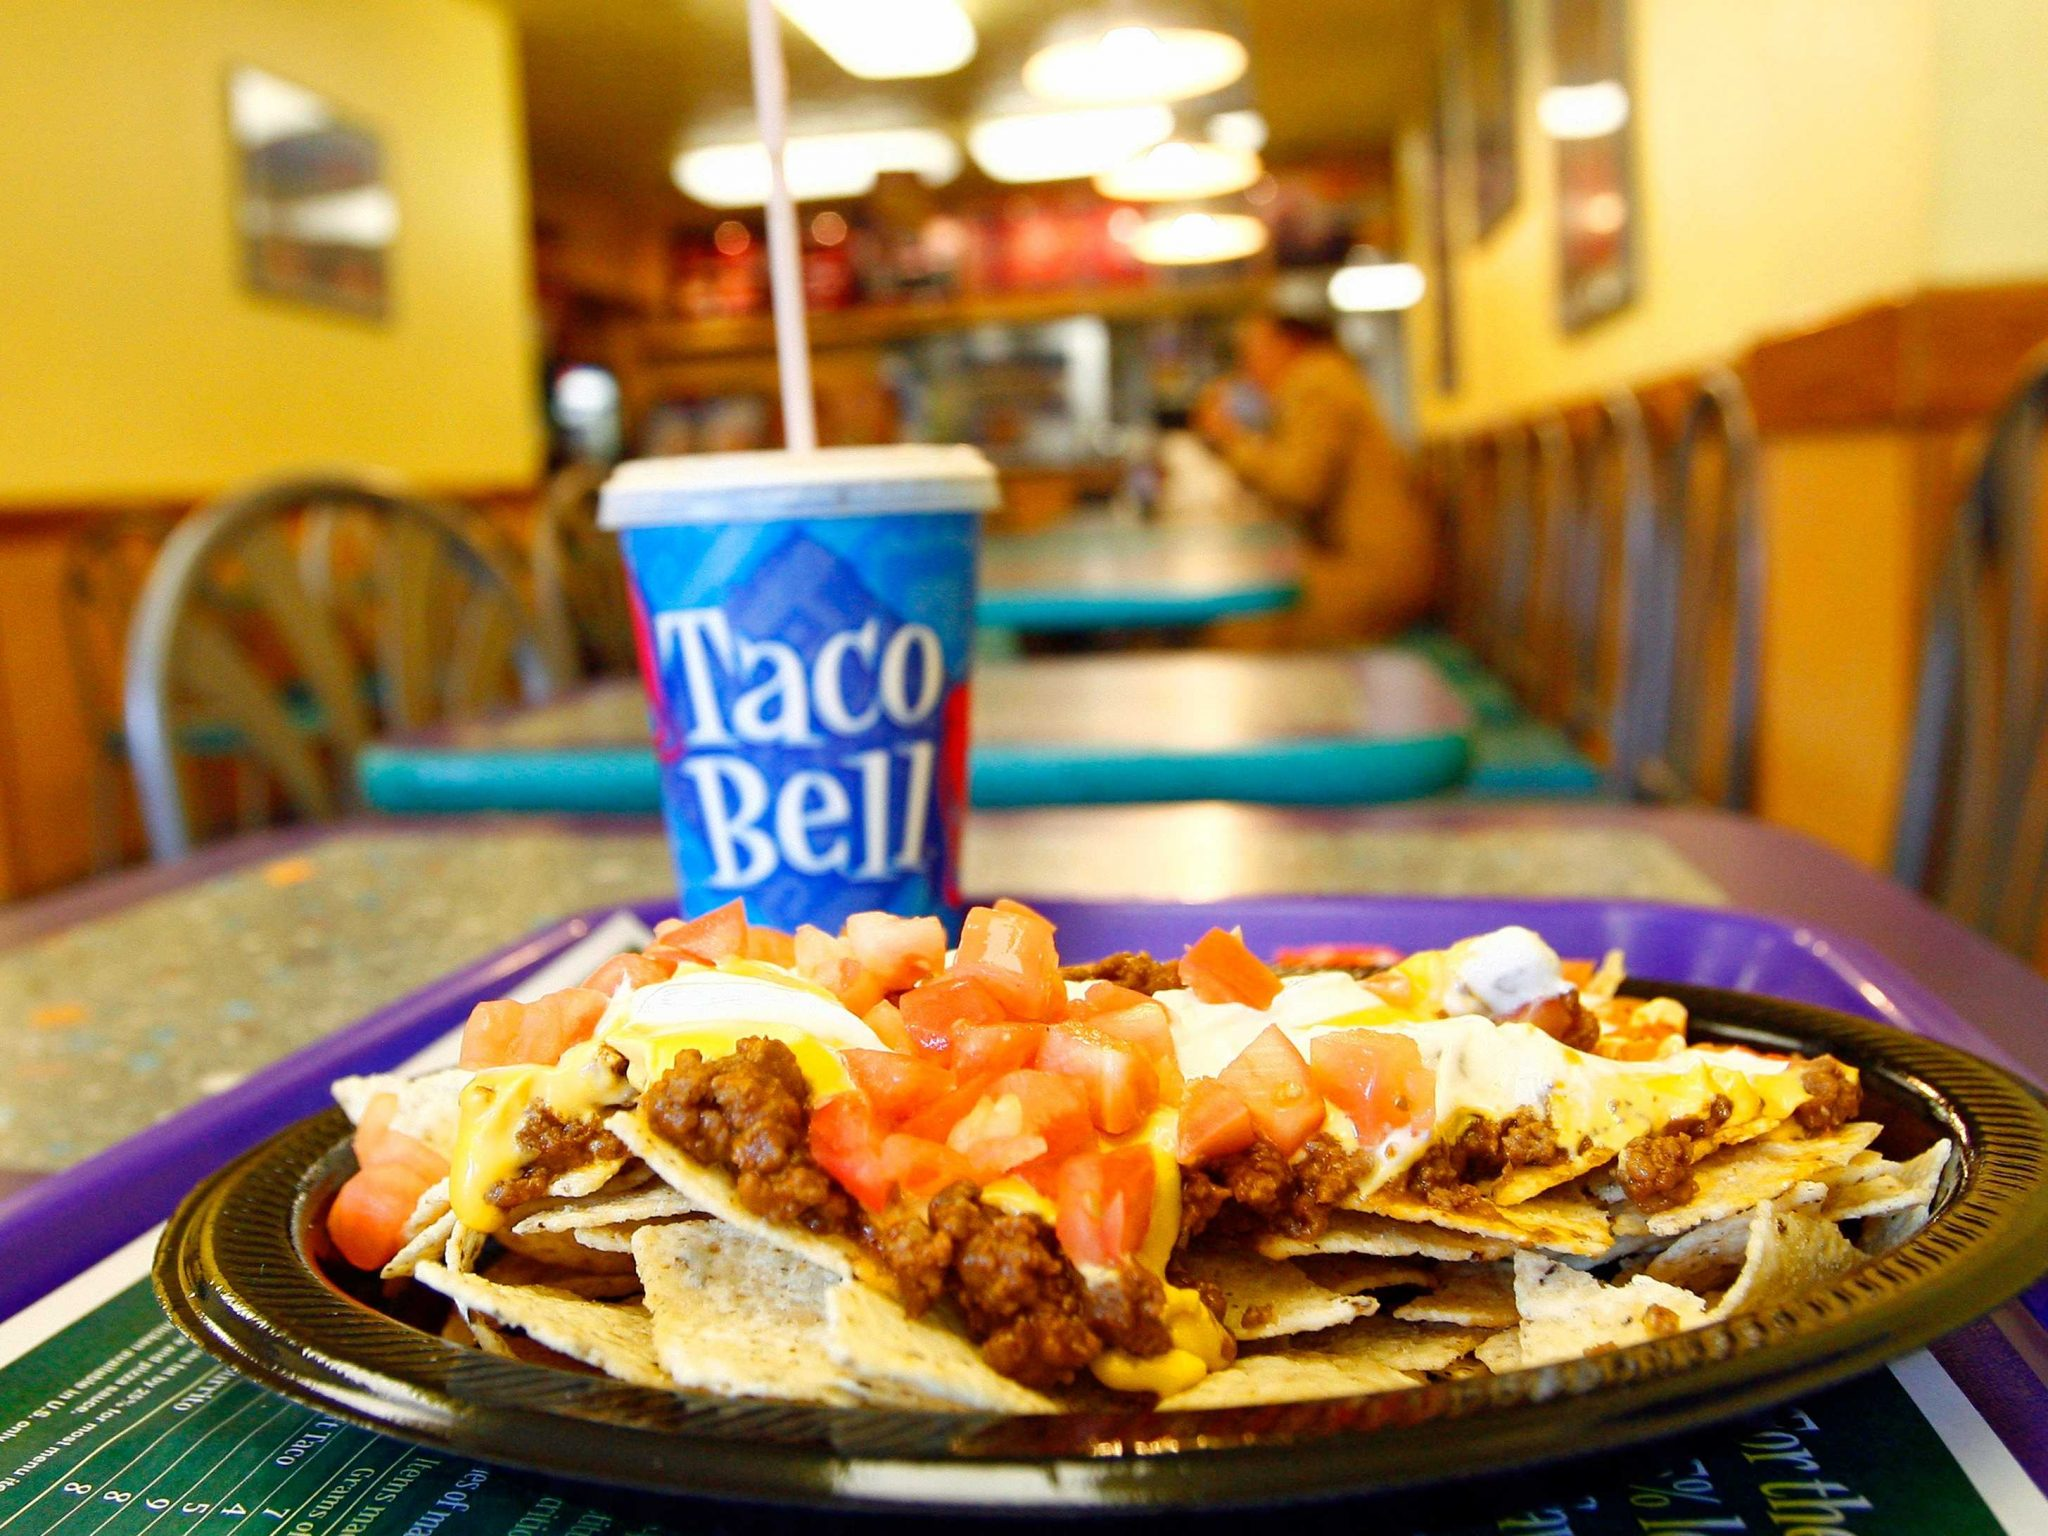 Taco bell open christmas christmas cards for Are there any restaurants open on christmas day